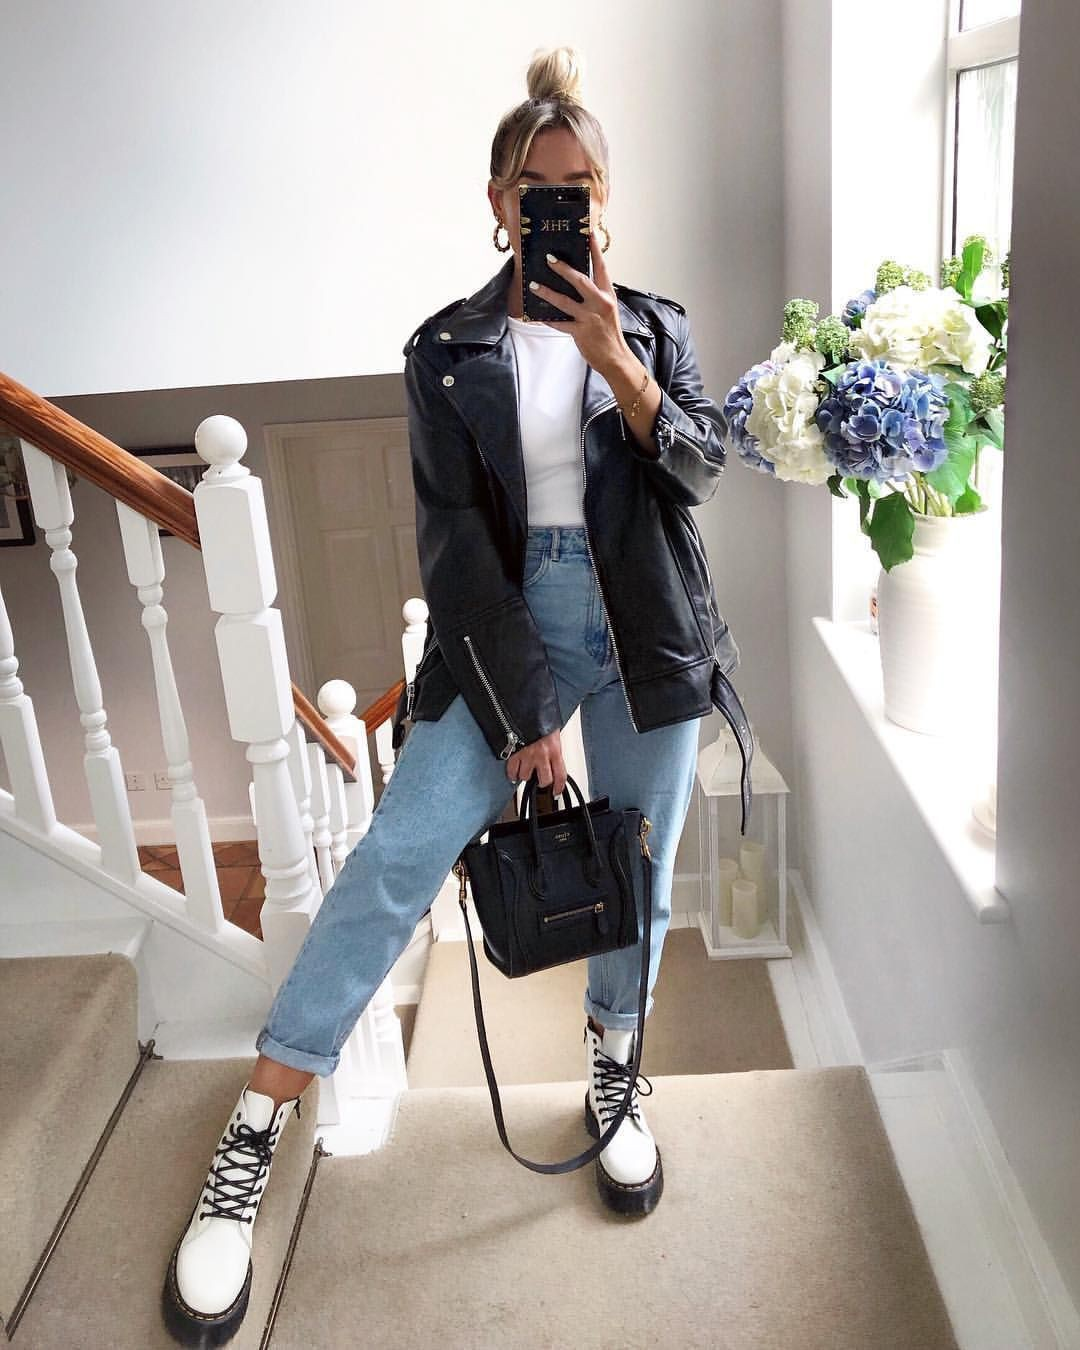 White colour outfit with leather jacket, jacket, jeans